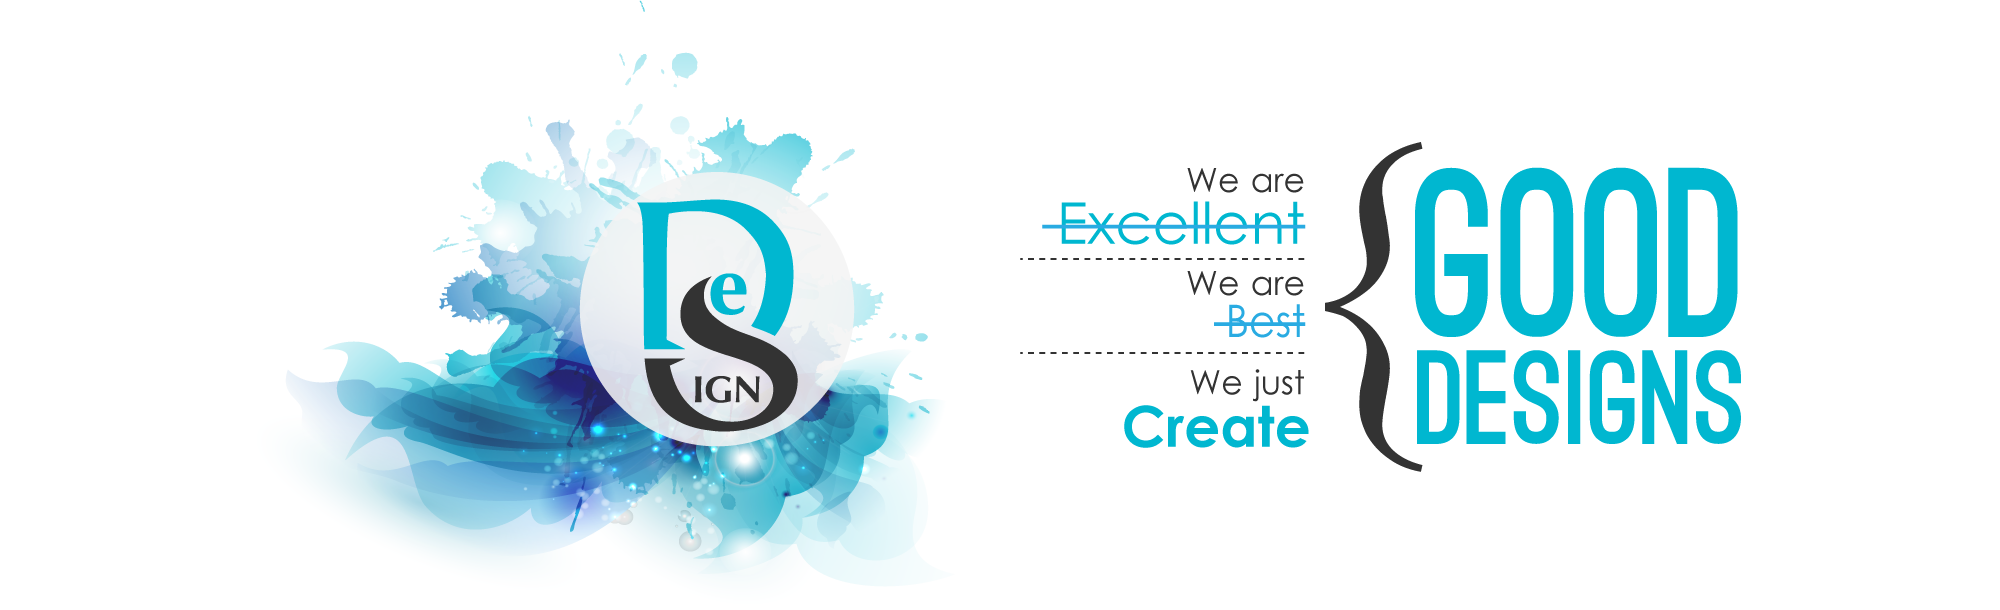 Interactive web design company in gurgaon delhi ncr for Service design firms